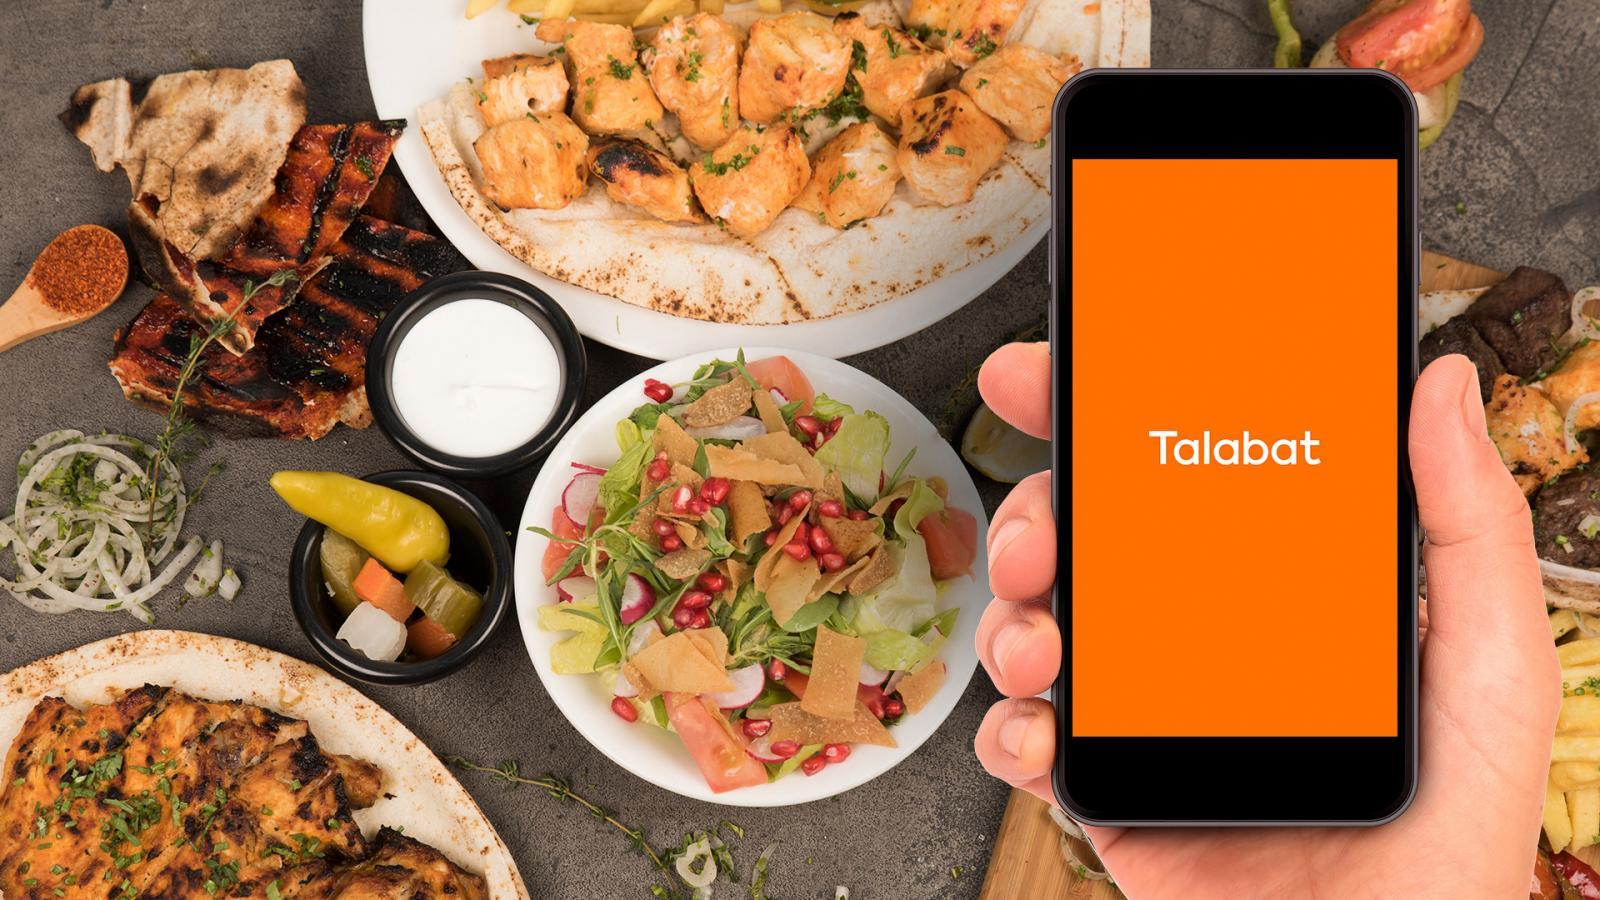 Talabat waives delivery fees in Qatar to support restaurants and customers